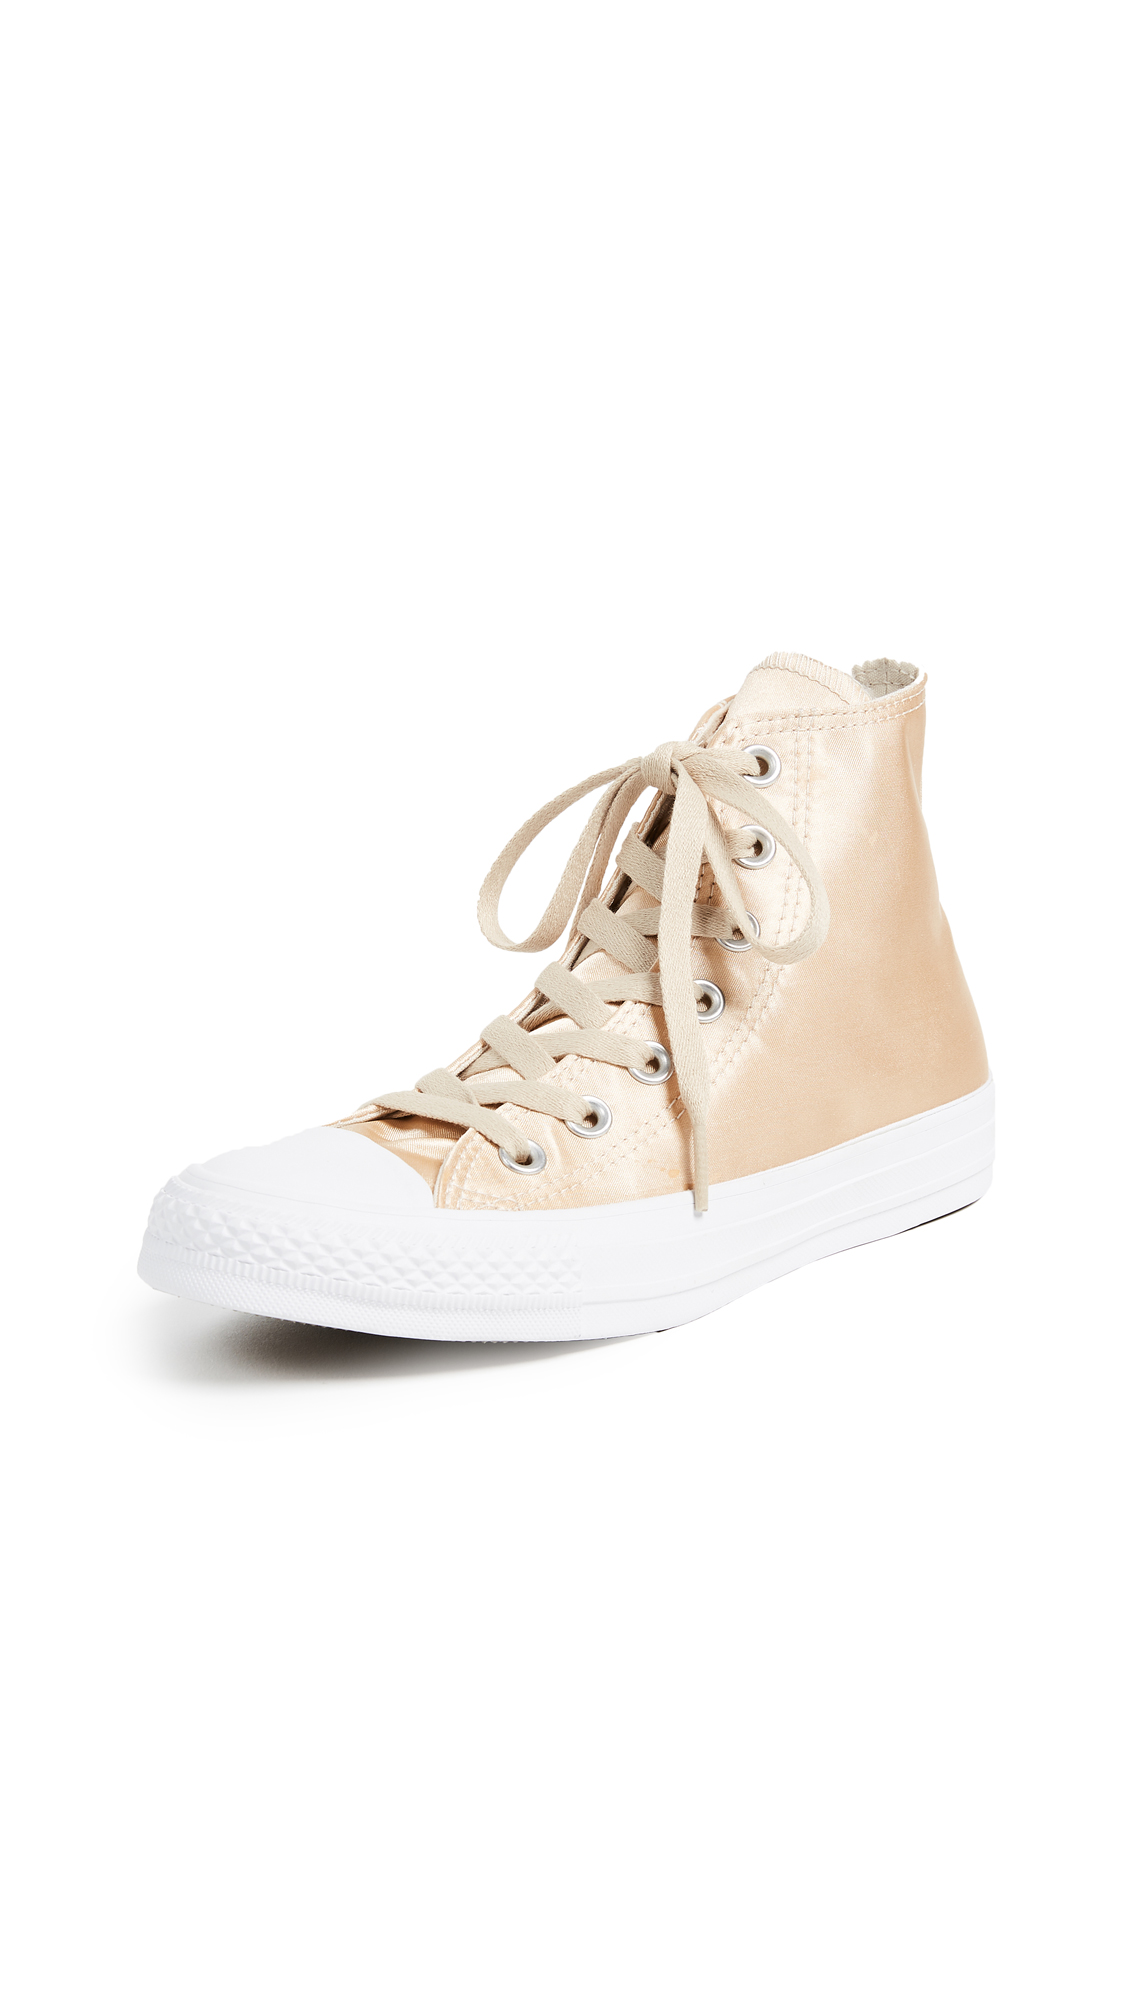 Converse Chuck Taylor All Star High Satin Sneakers - Parchment/Parchment/White